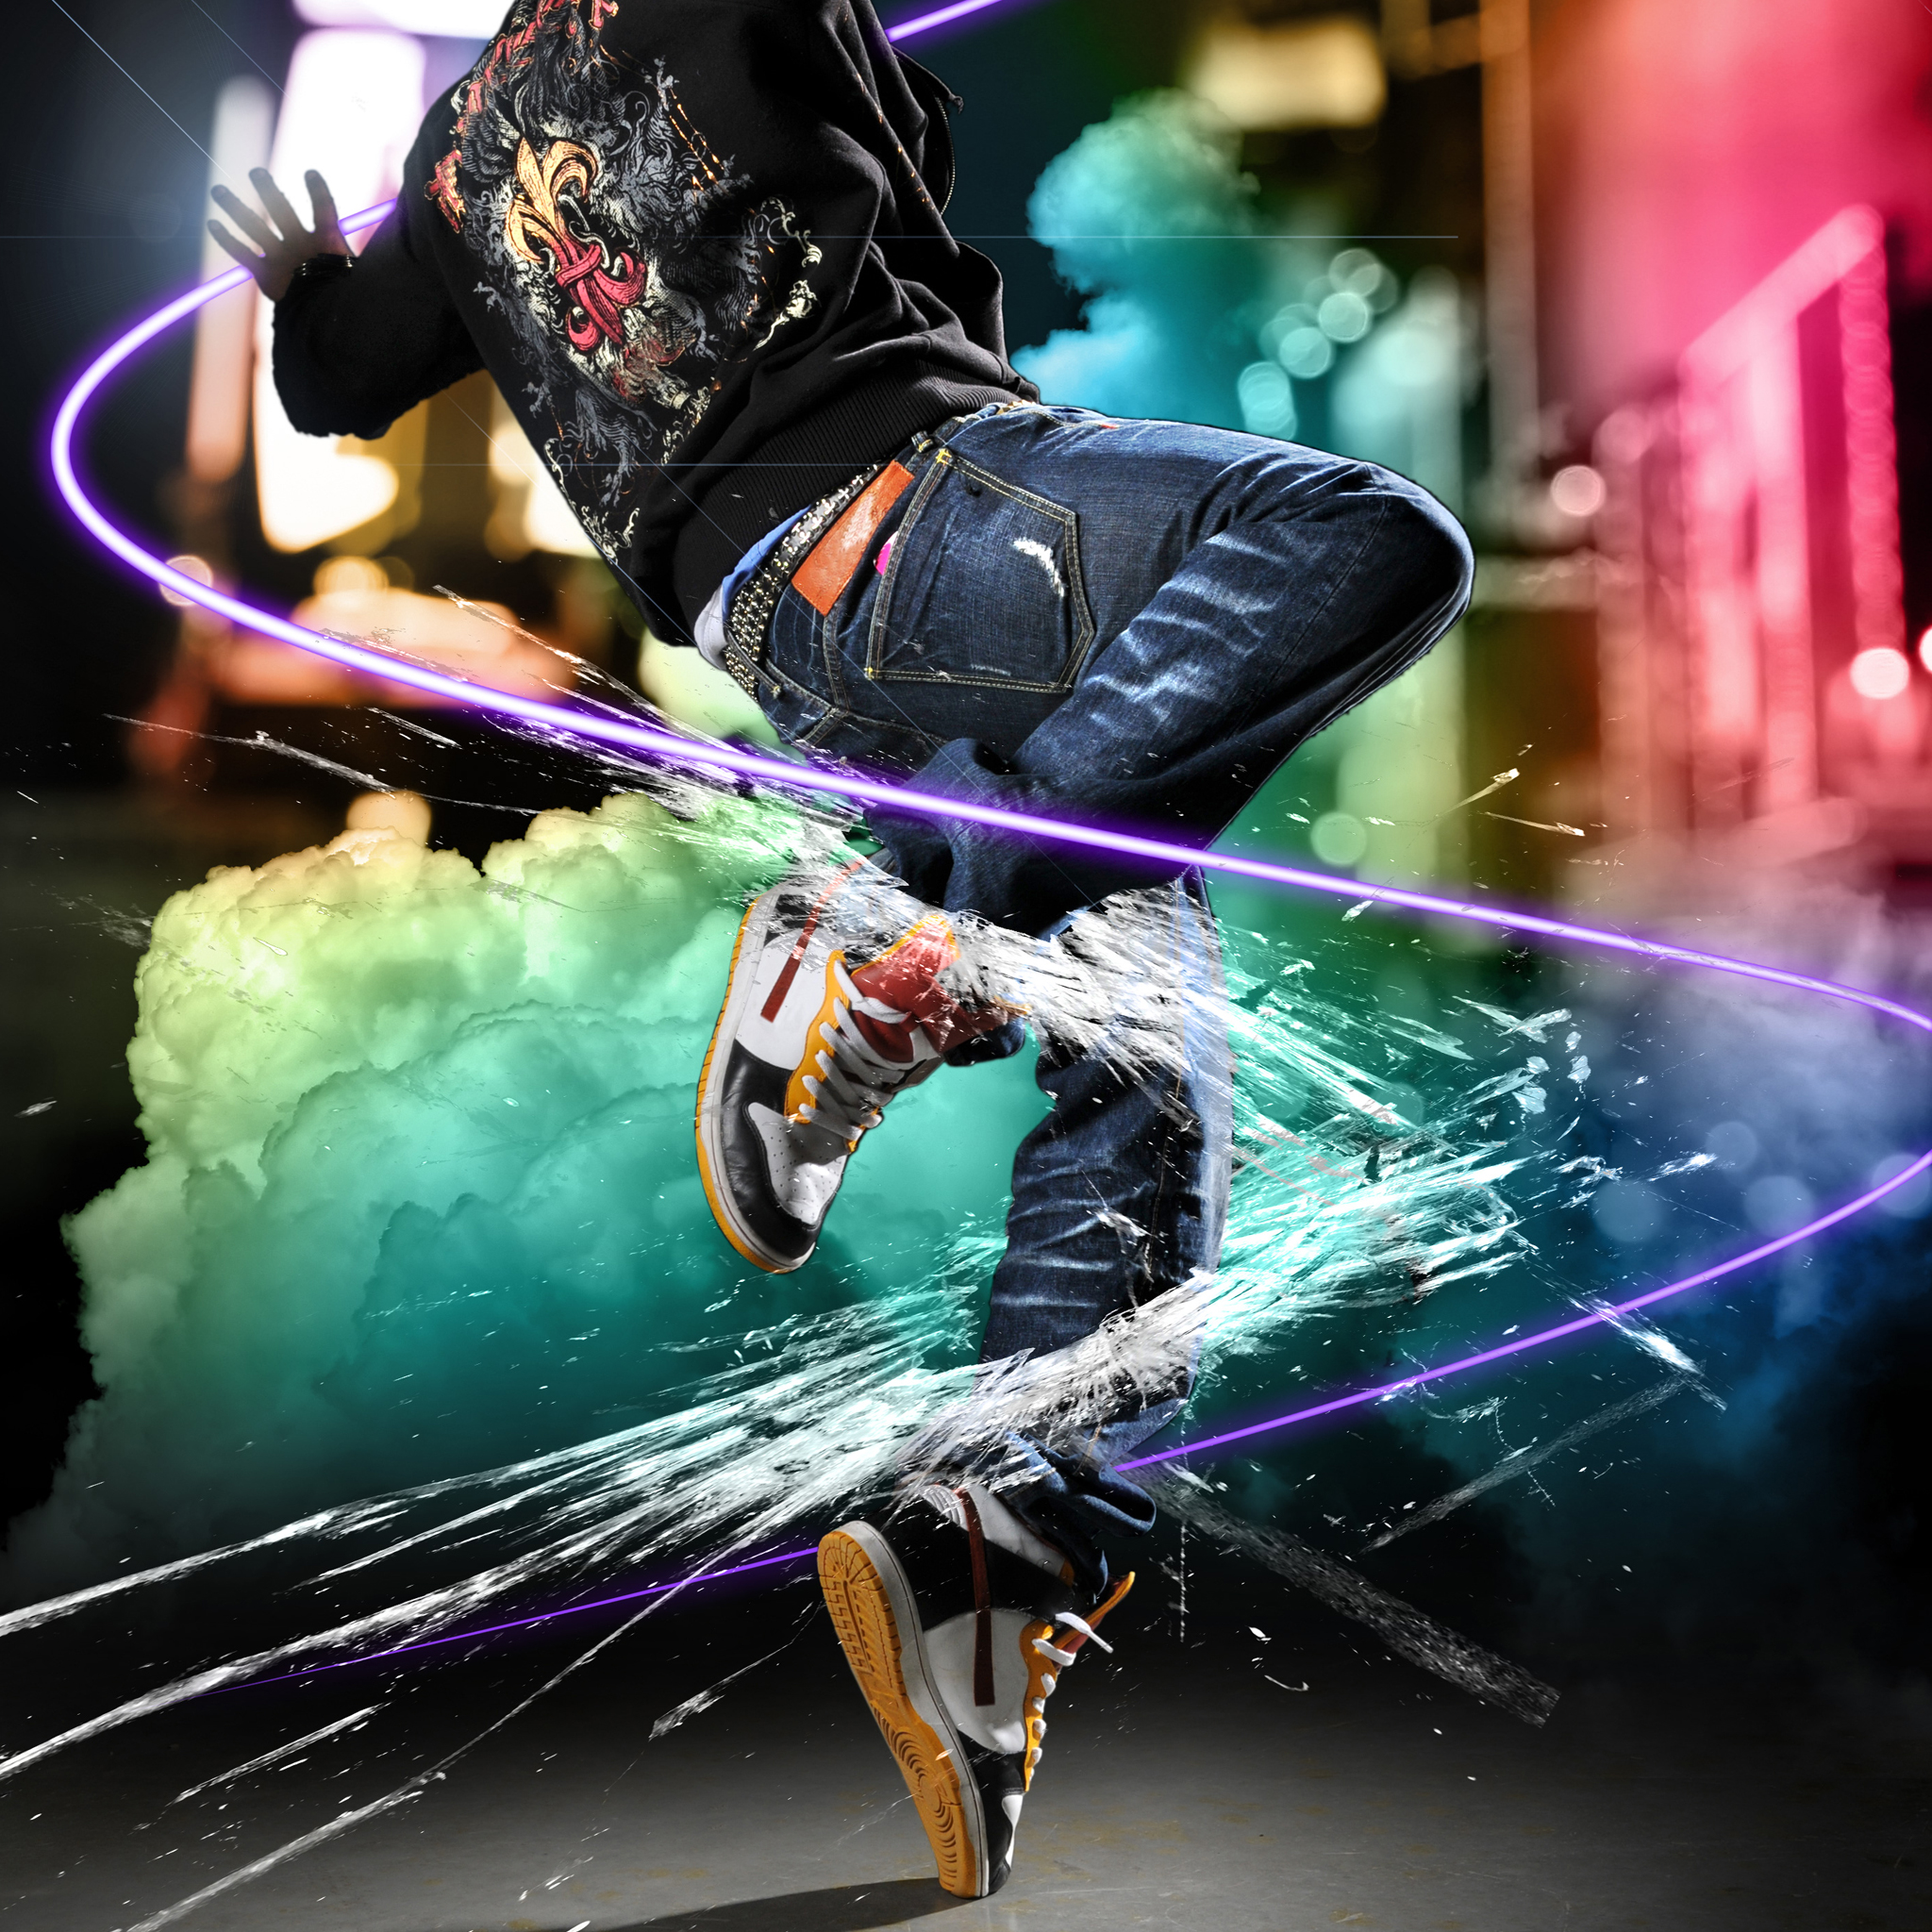 Marvel Iphone 7 Wallpaper Graphic Dance Wallpaper For Iphone X 8 7 6 Free